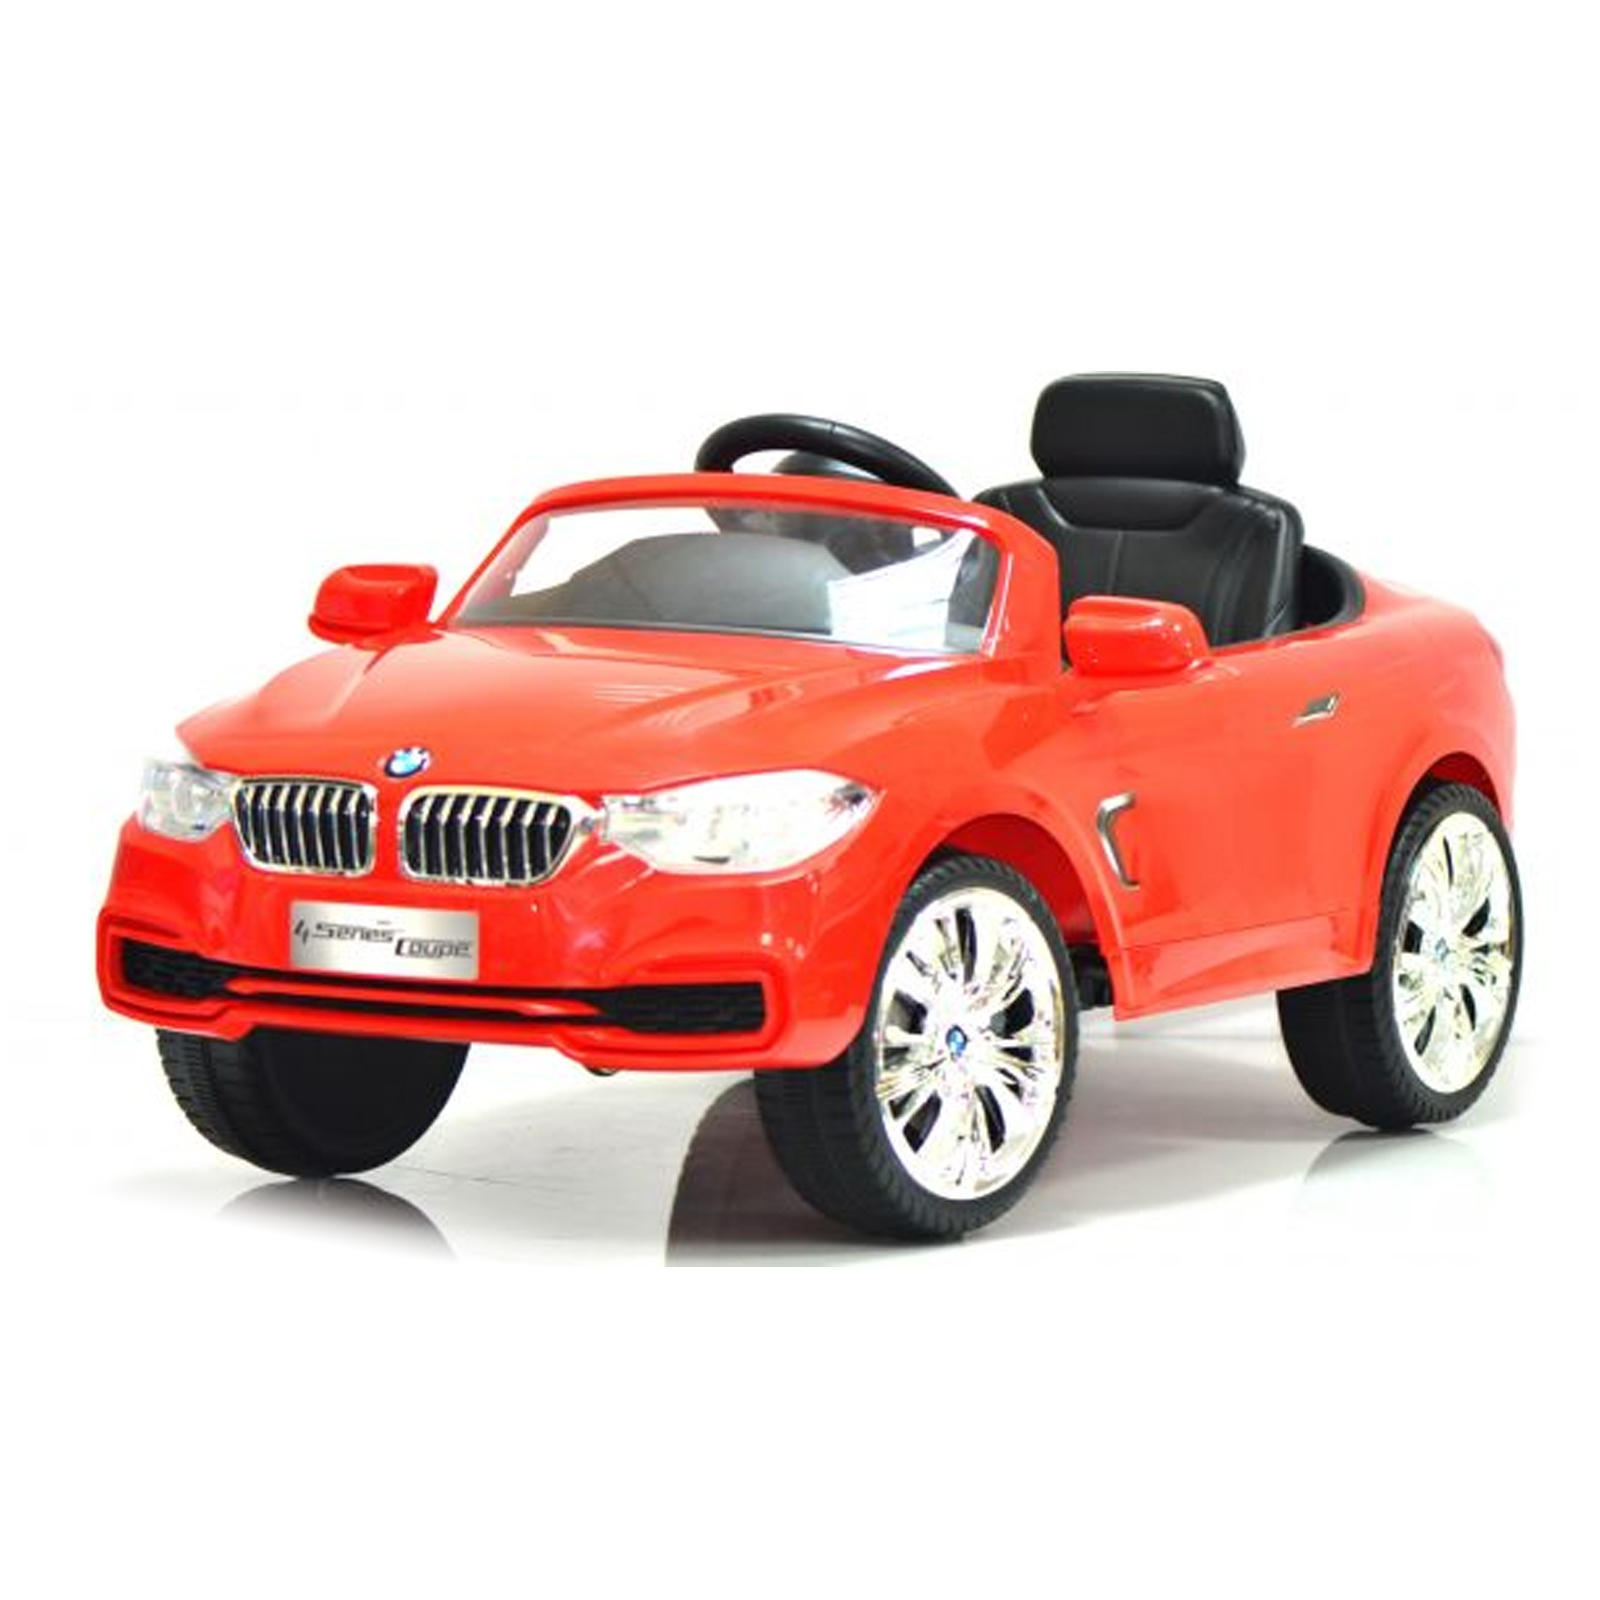 toy bmw 3 series ride on car. Black Bedroom Furniture Sets. Home Design Ideas